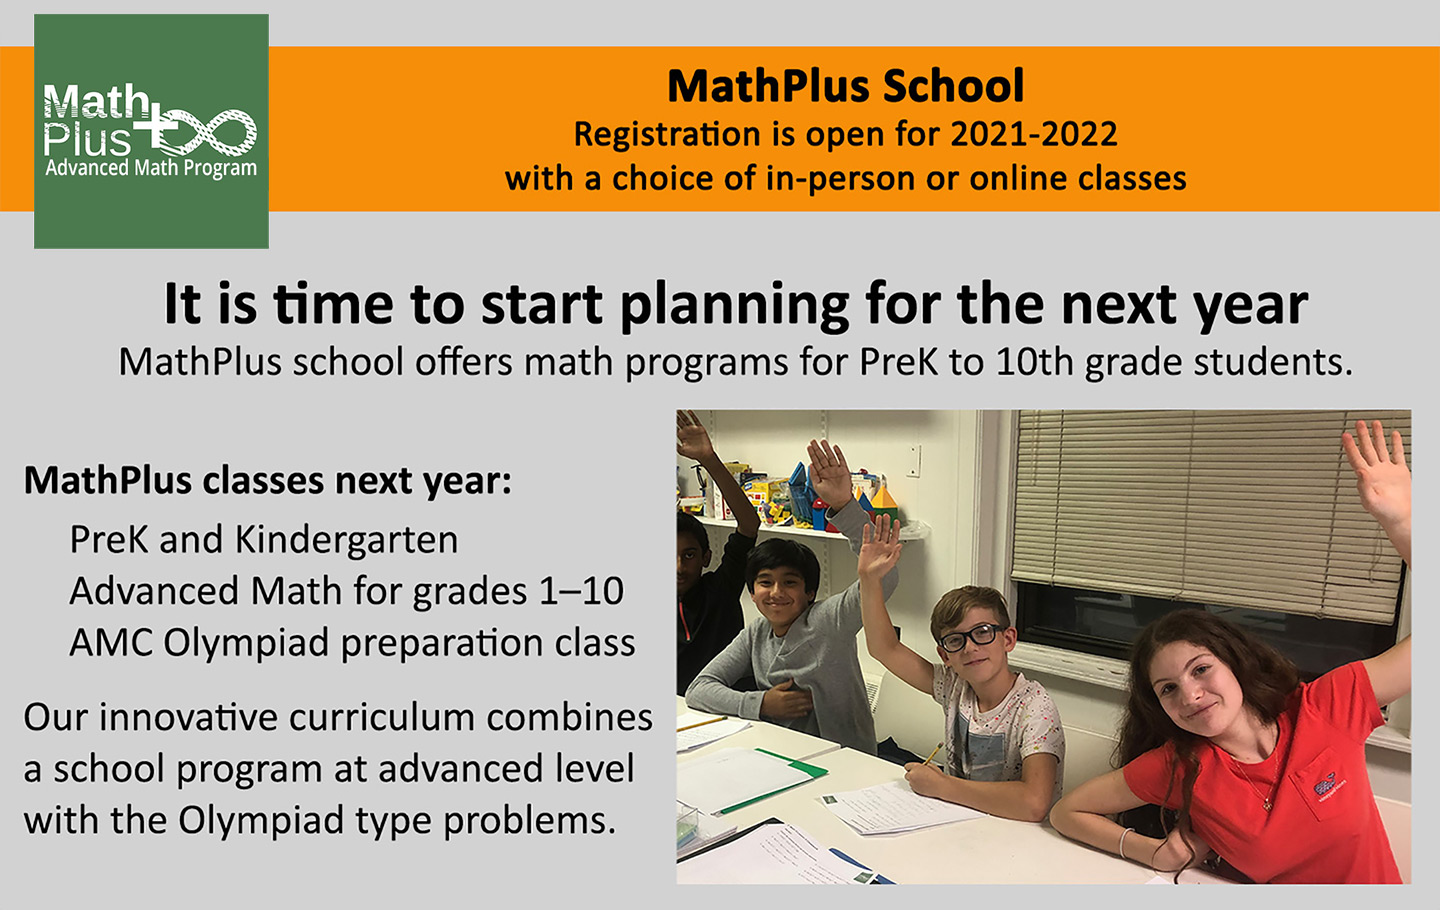 Registration is open for 2021-2022 with a choice of in-person or online classes